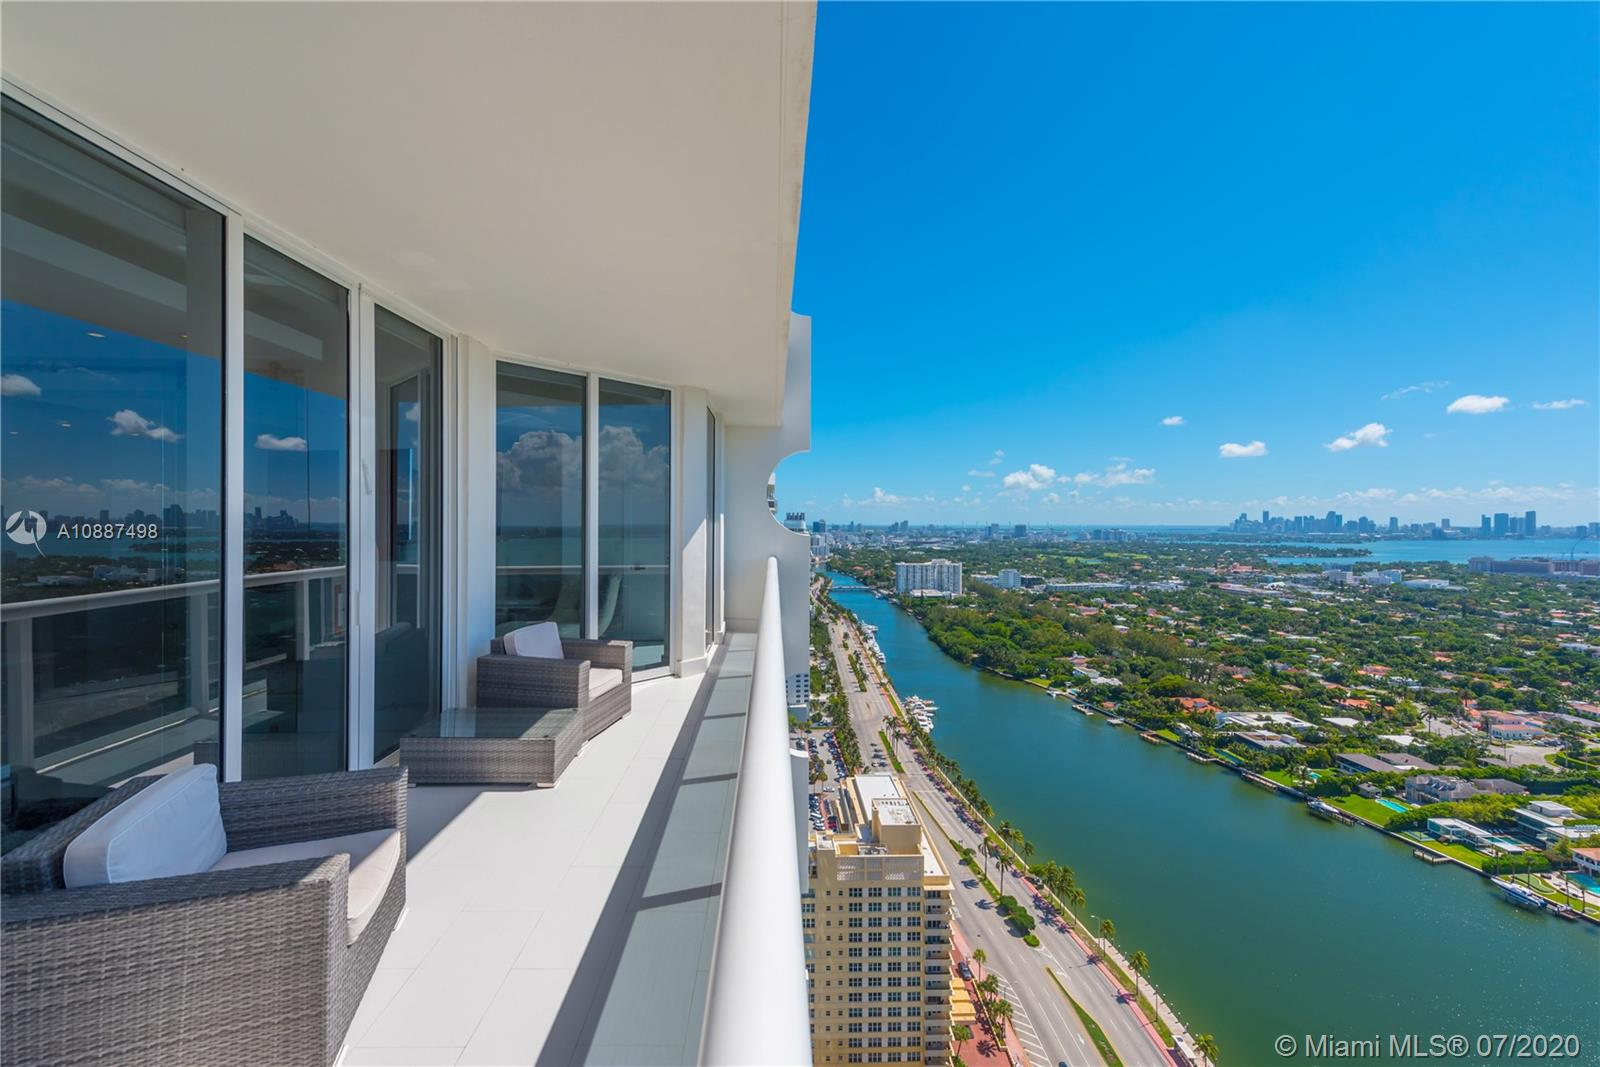 Enjoy breathtaking views of the bay and city skyline from this one-of-a-kind designed penthouse.  Throughout the condo are coveted features including floor- to -ceiling windows providing plenty of natural lighting; electric shades; LED custom lighting, high ceilings & marble floors throughout. The kitchen opens to a large living and dining room area, with top of the line appliances.  Expansive suite bedroom is a showcase. Being offered furnished. The Blue Diamond Condo is one of Miami Beach's most sought after addresses. Enjoy luxury beachfront living with five-star resort-style amenities.